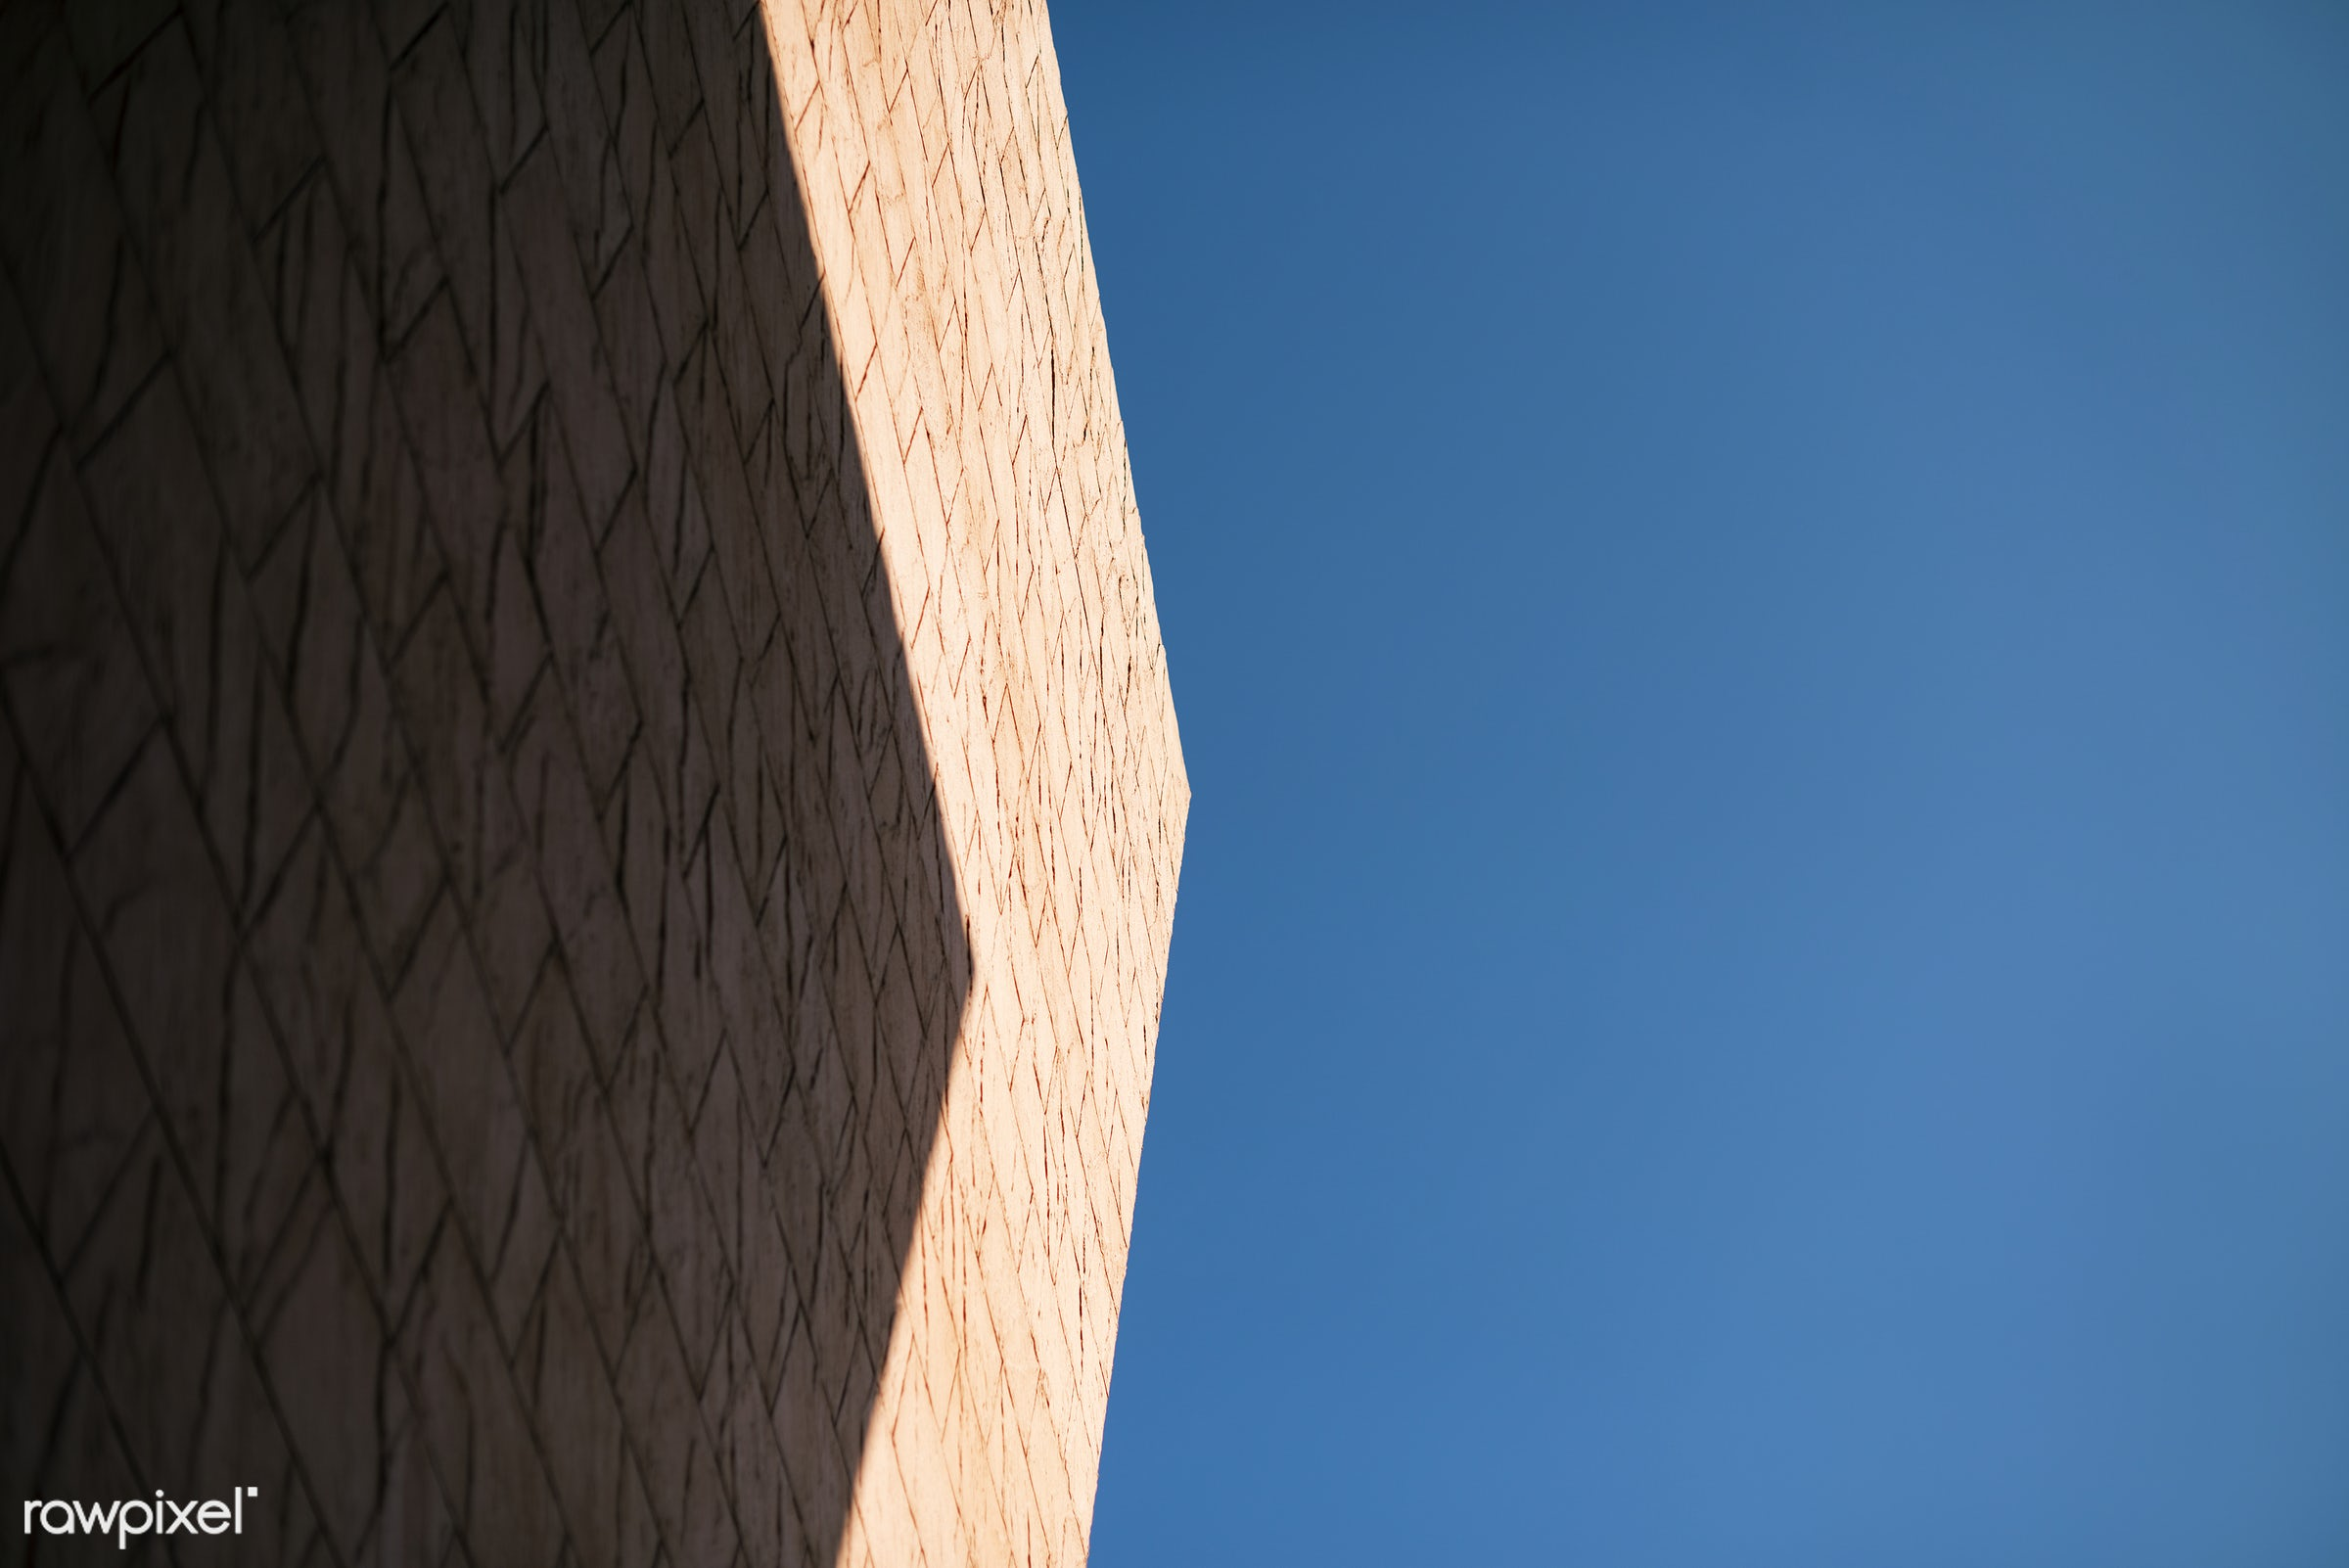 abstract, architecture, brick, building, concrete, construction, design, exterior, shadow, sky, structure